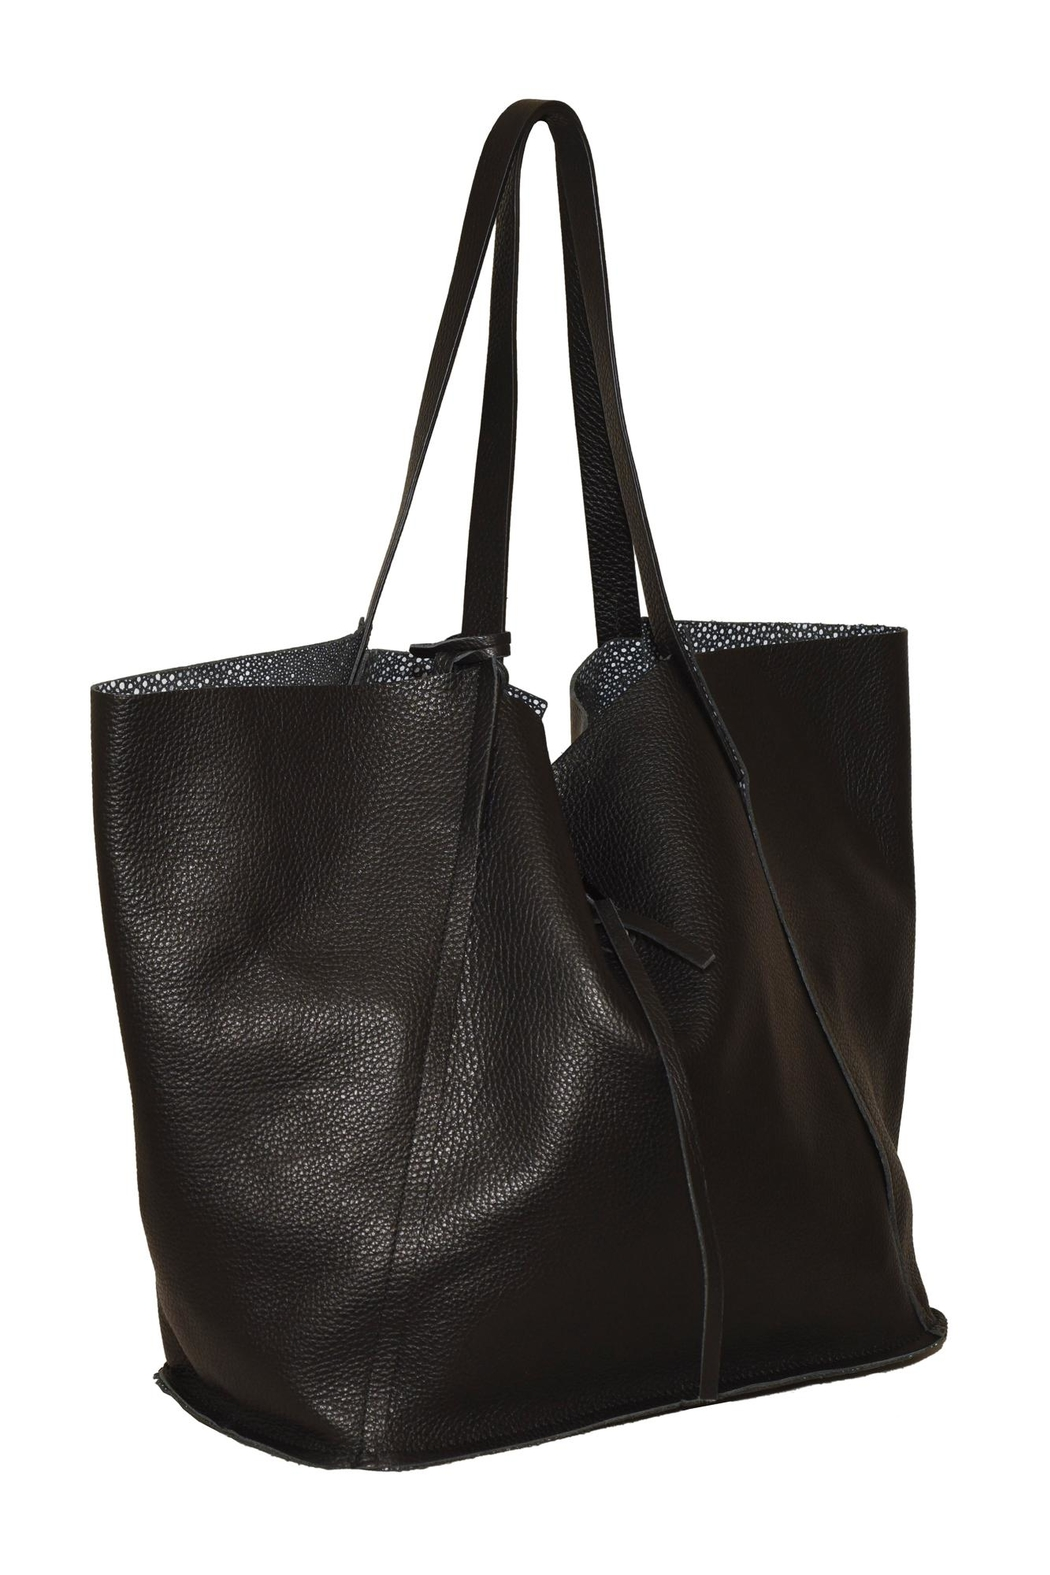 Bevini Modena Slouchy Leather Tote Front Full Image